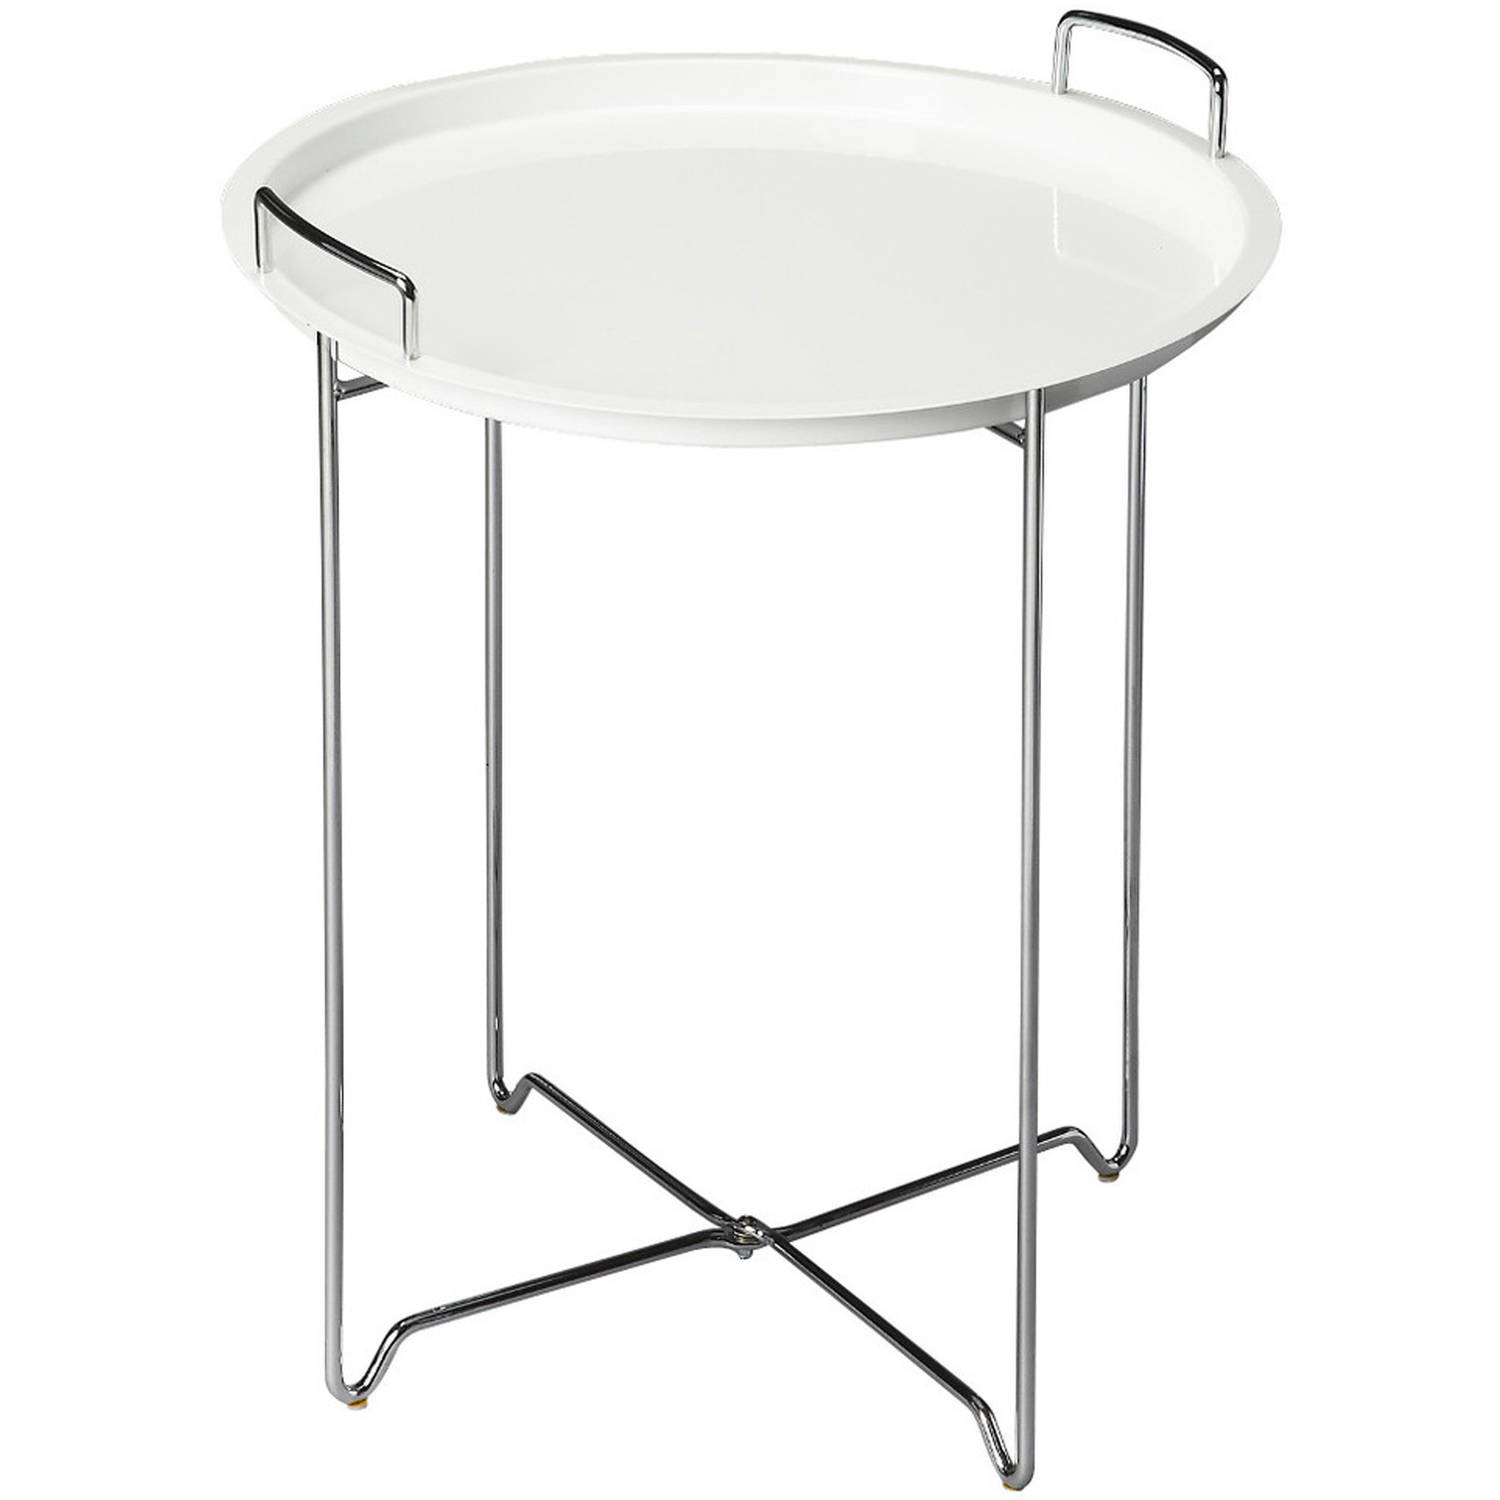 Butler Midtown Modern Tray Table, Multiple Colors